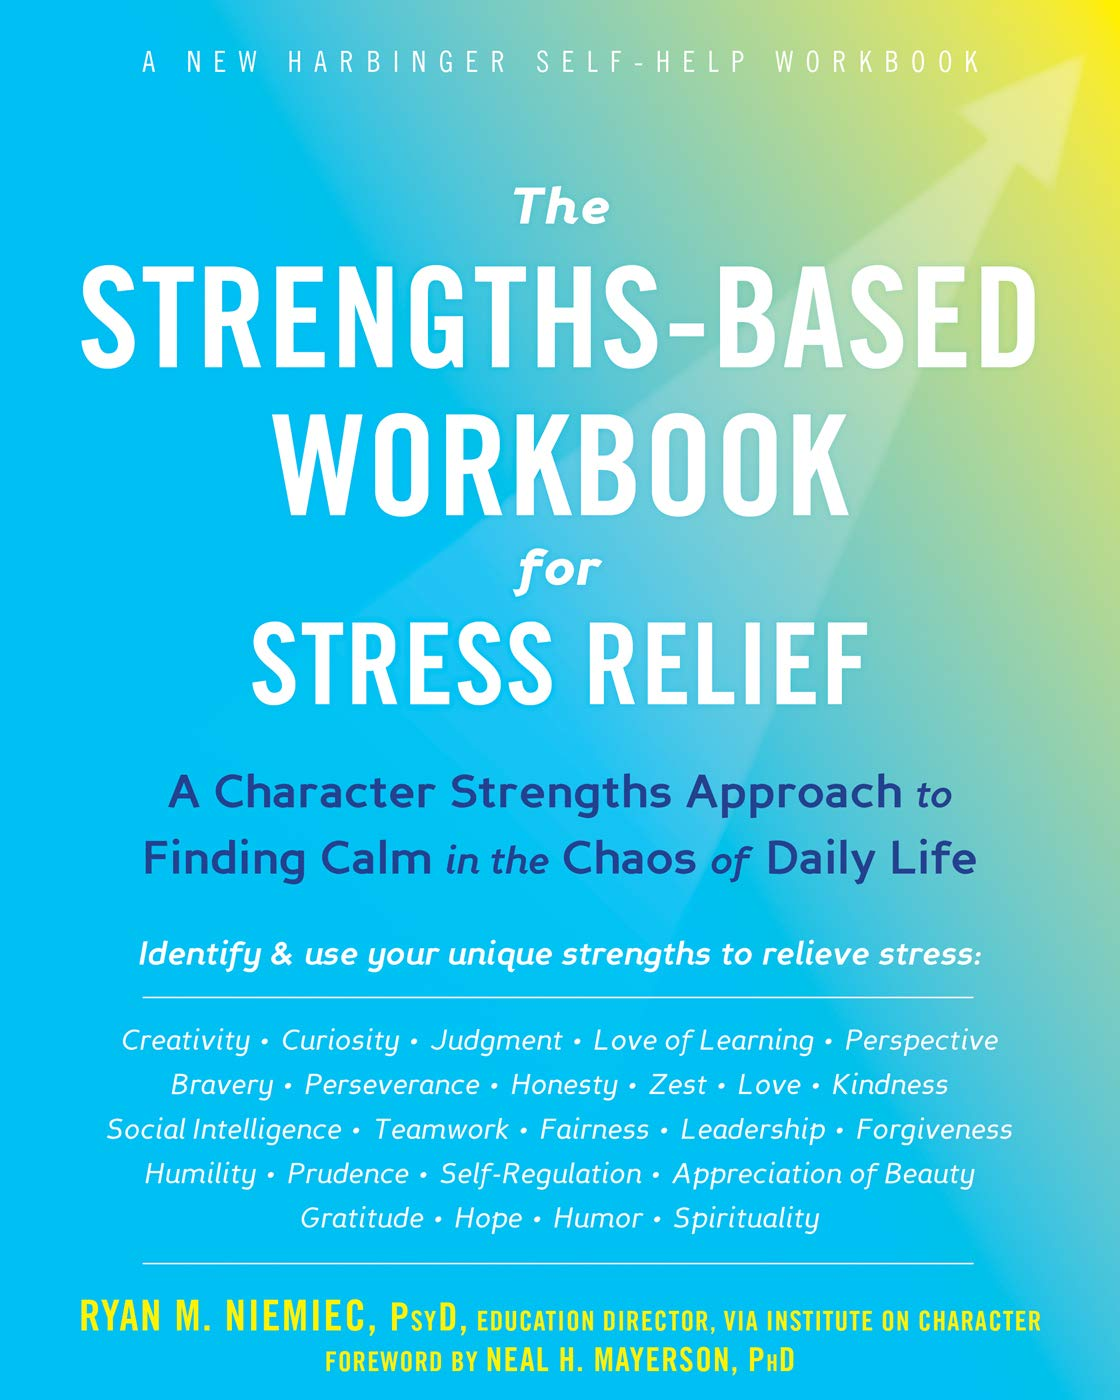 The Strengths-Based Workbook for Stress Relief (A New Harbinger Self-Help Workbook)